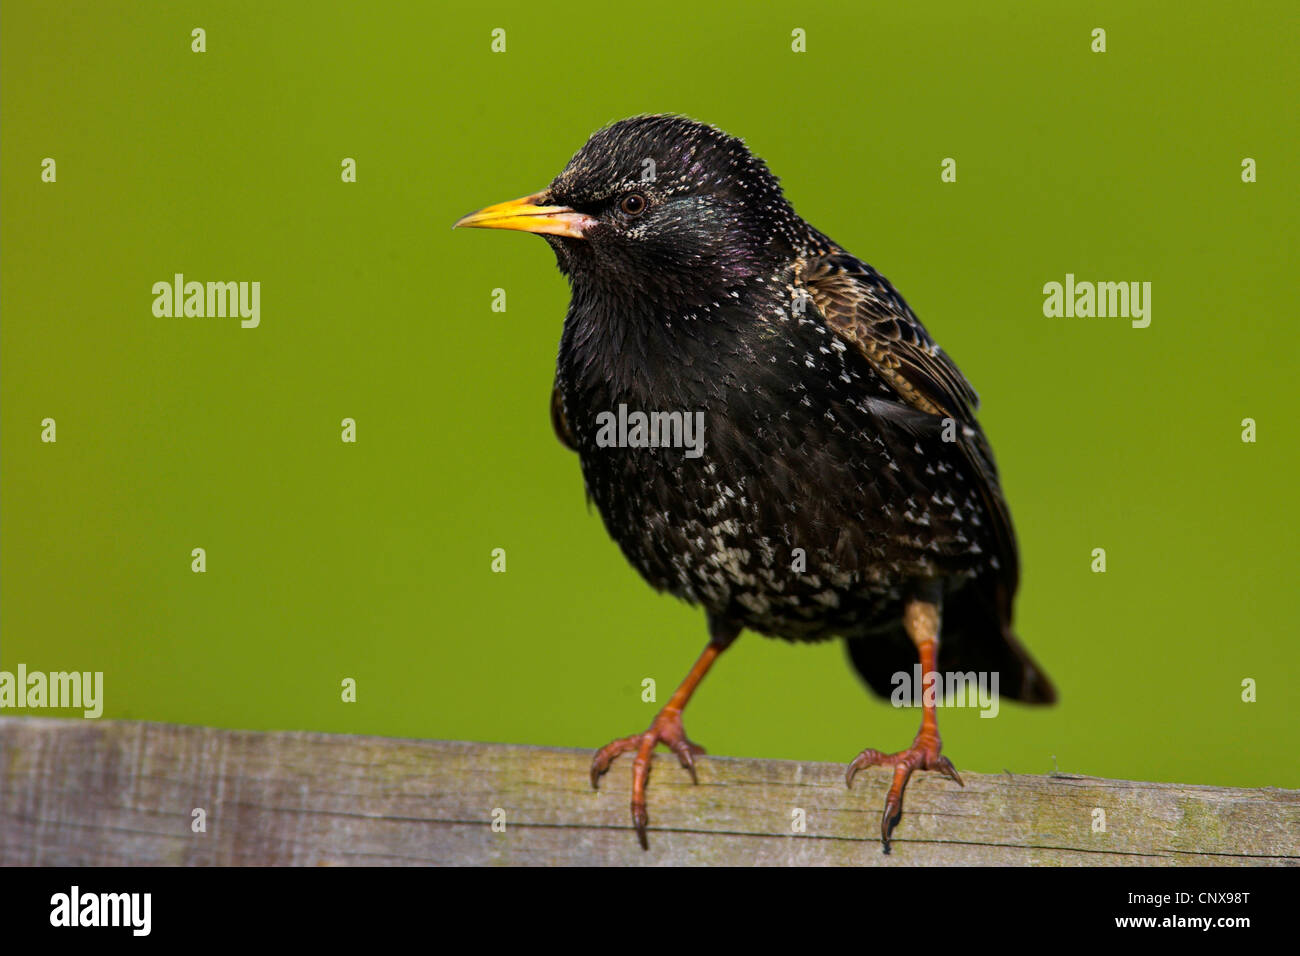 common starling (Sturnus vulgaris), sitting on a wooden fence, Netherlands, Texel Stock Photo